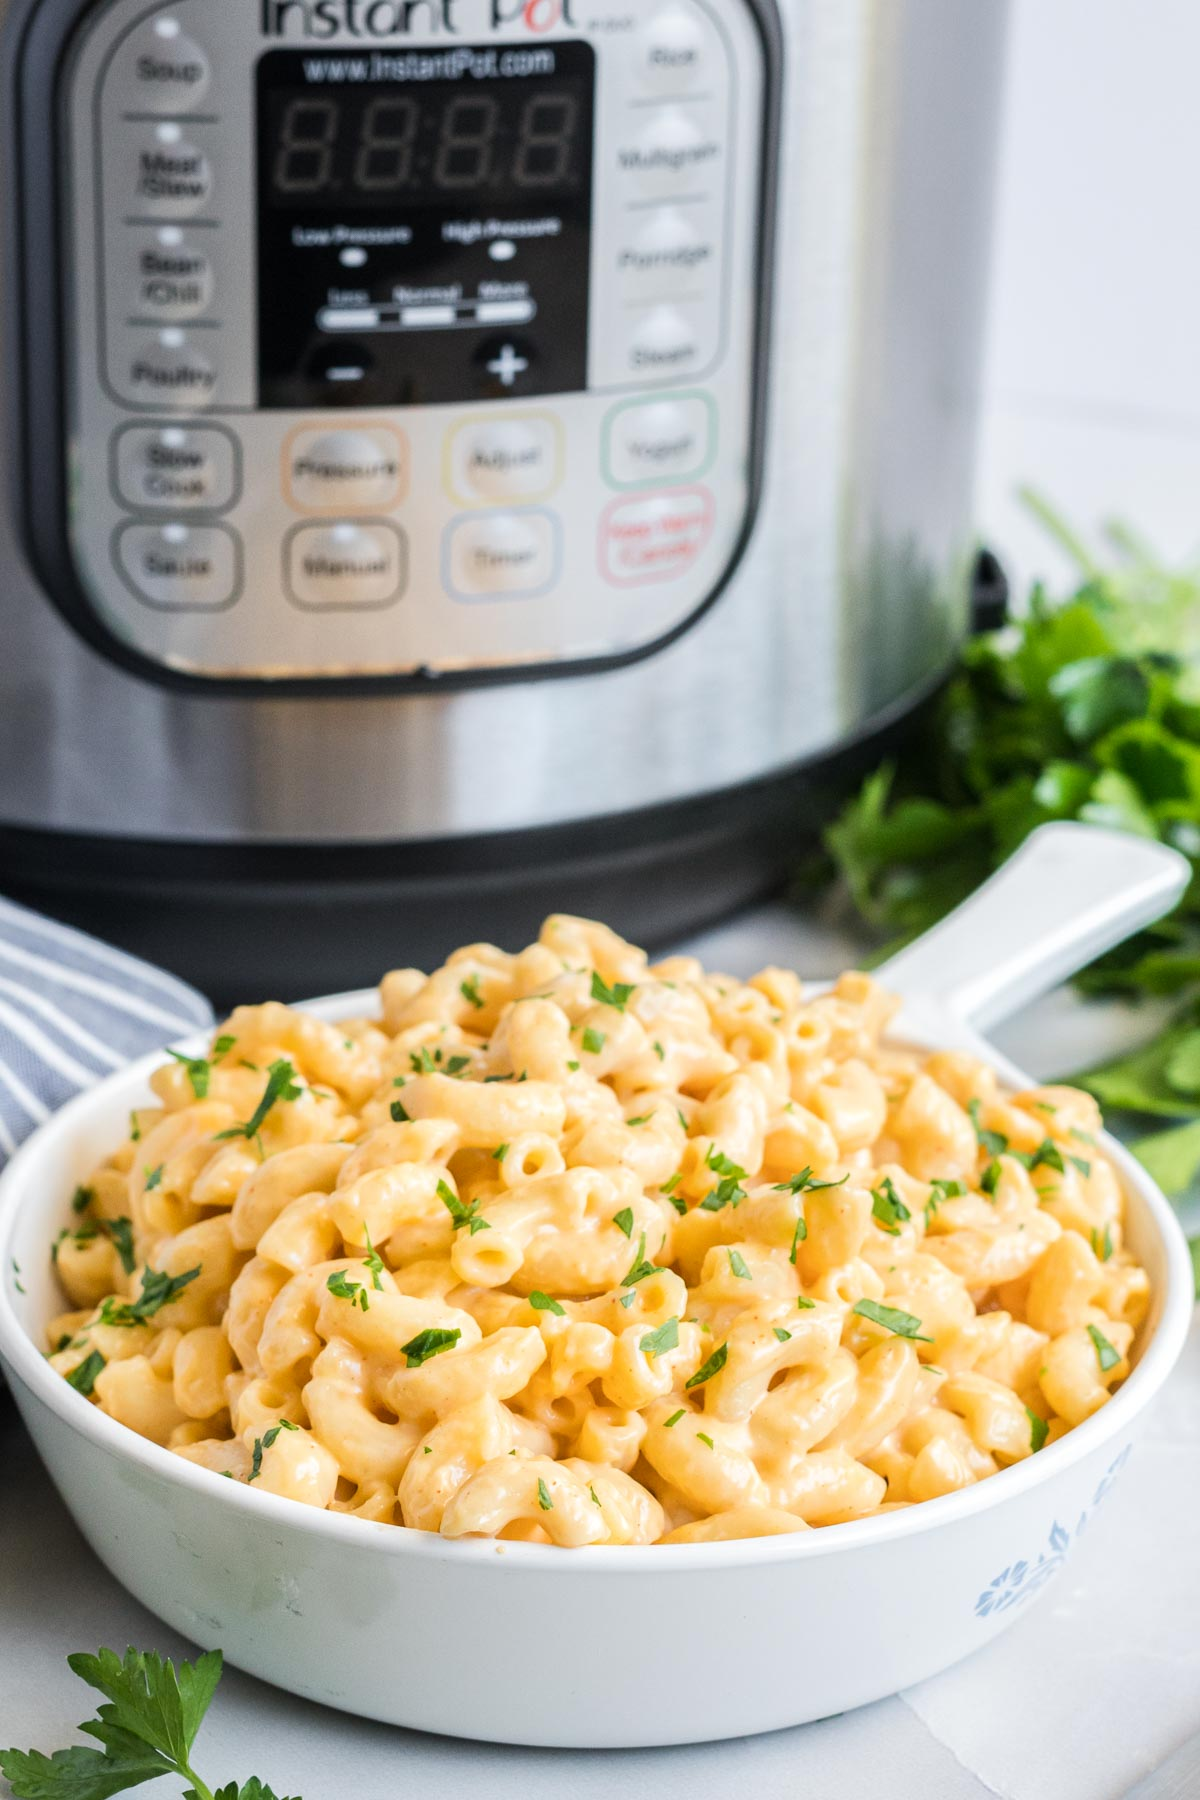 Mac and cheese in a serving dish with an instant pot in the background.